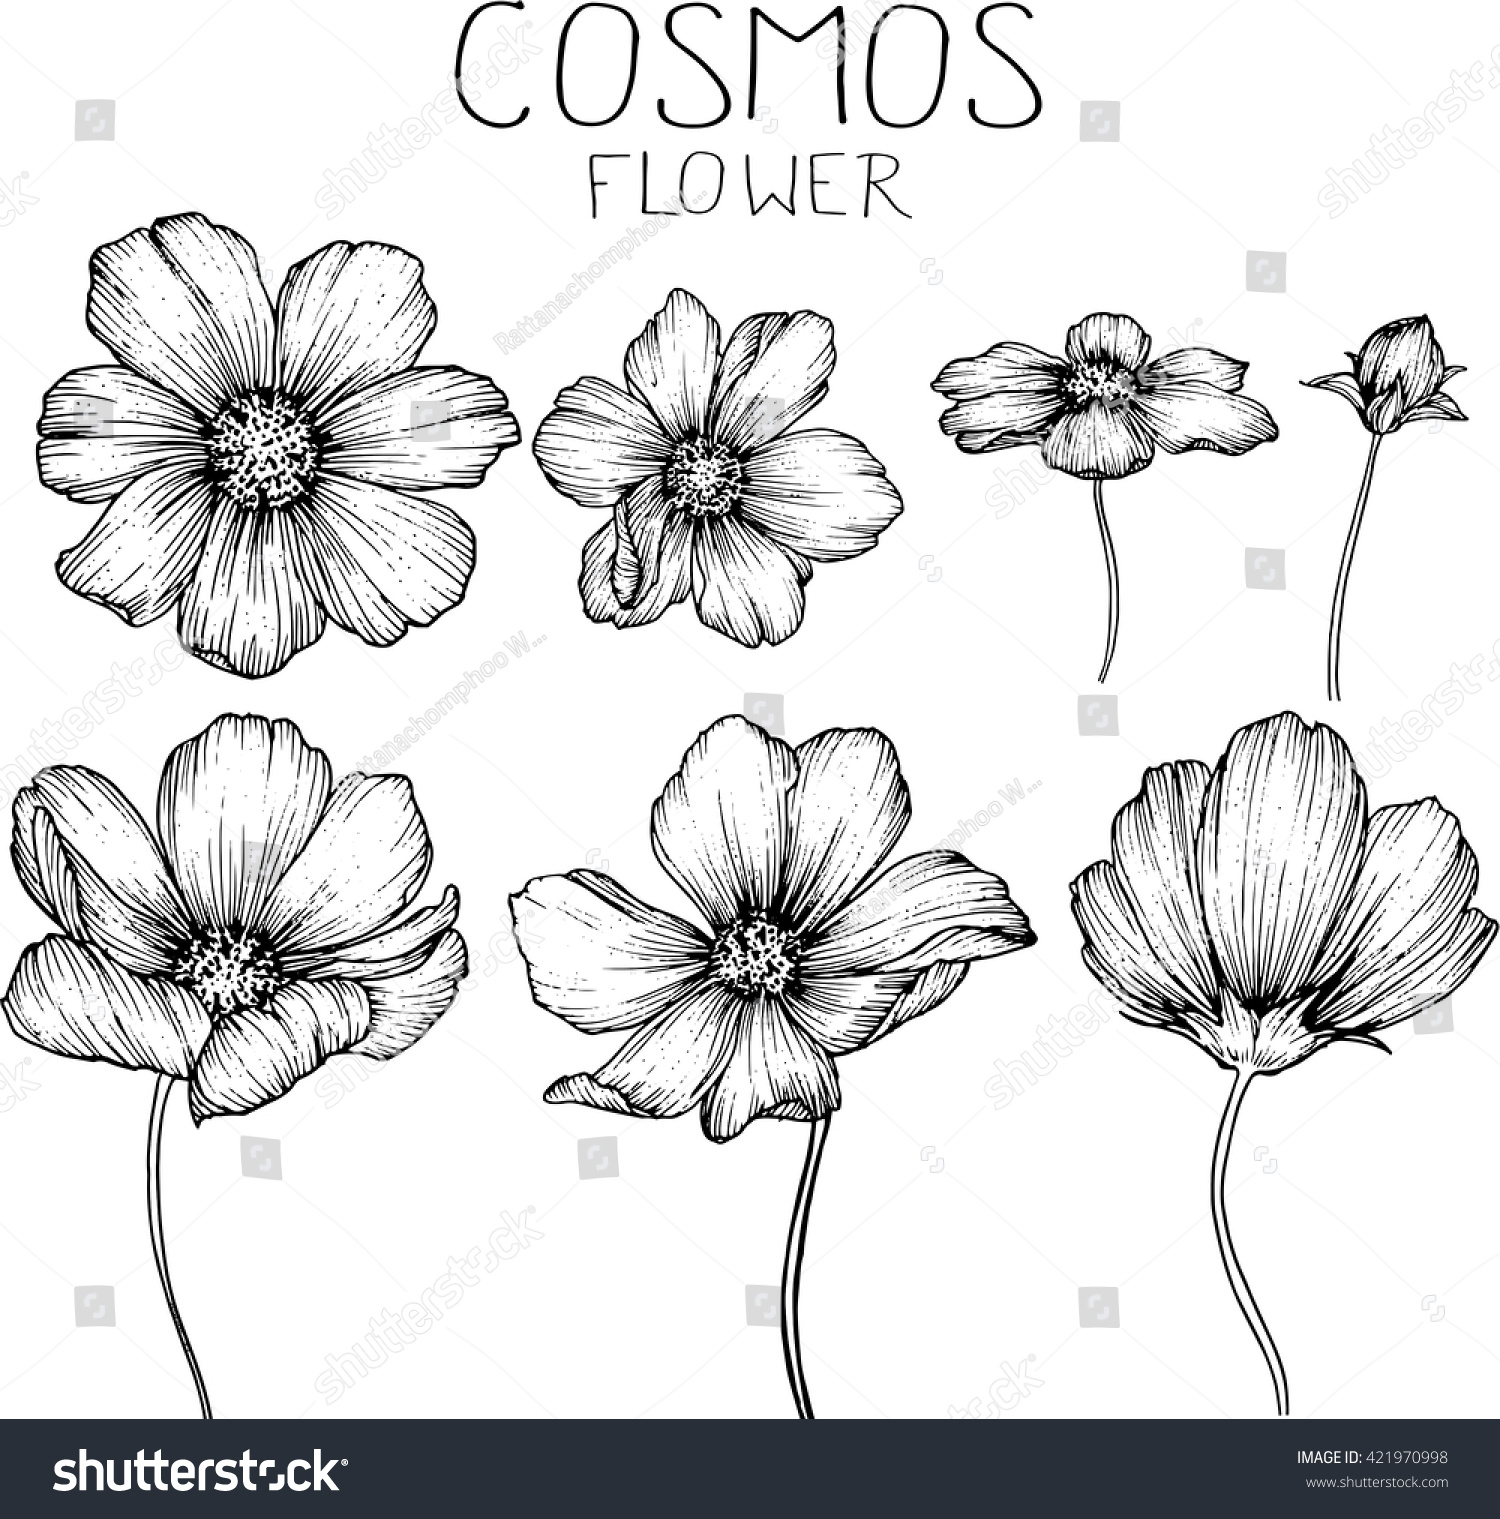 Cosmos Flowers Drawings Vector Stock Vector Royalty Free 421970998